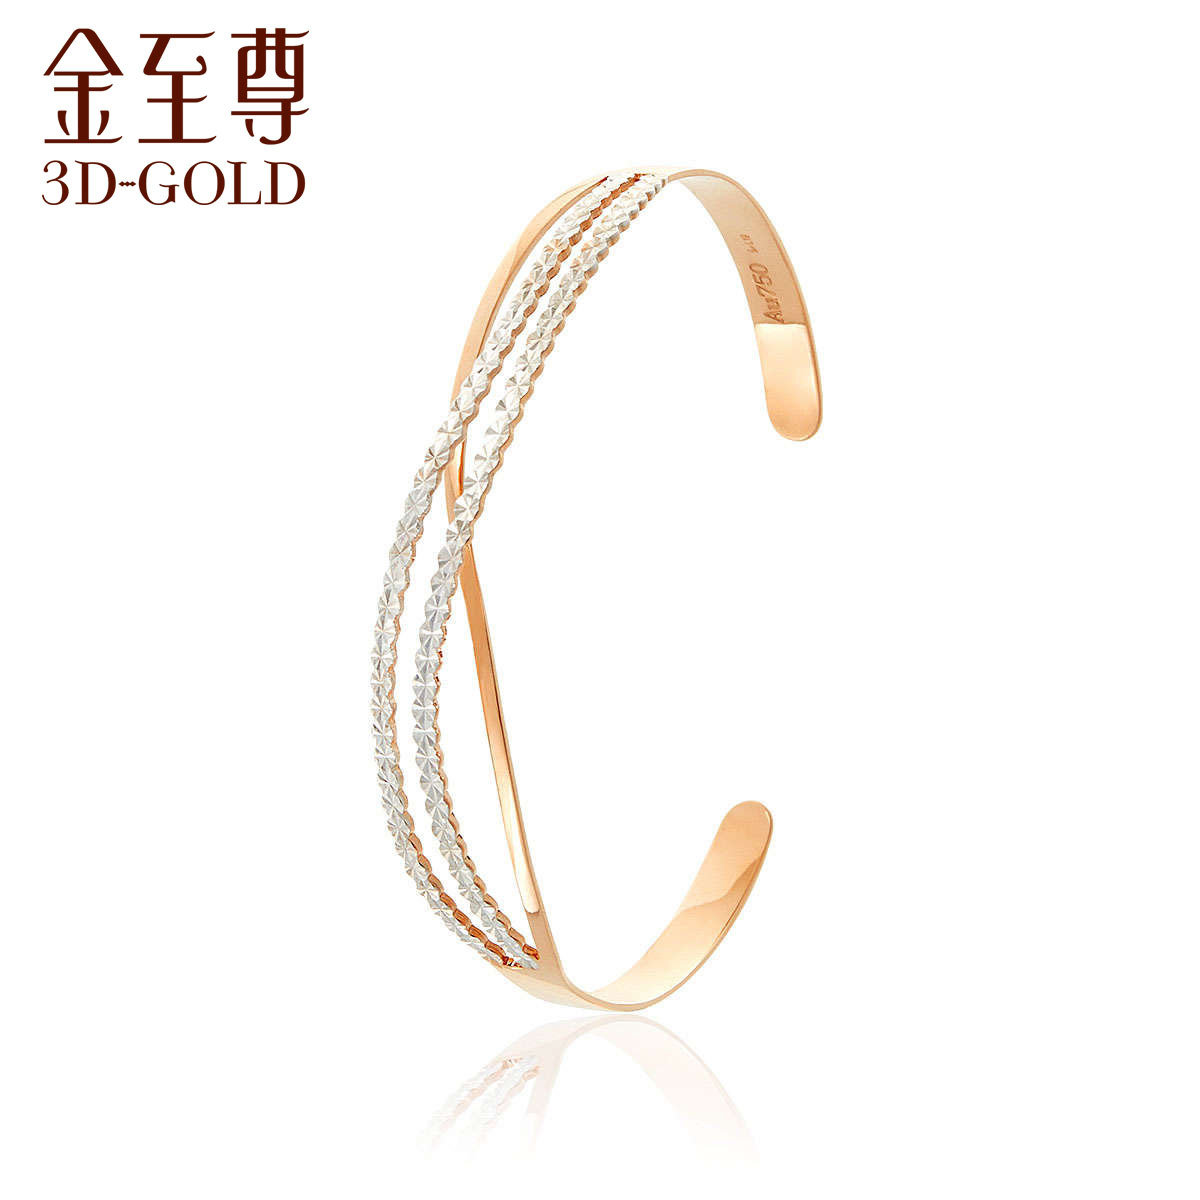 18K Bi-Color Gold Bangle